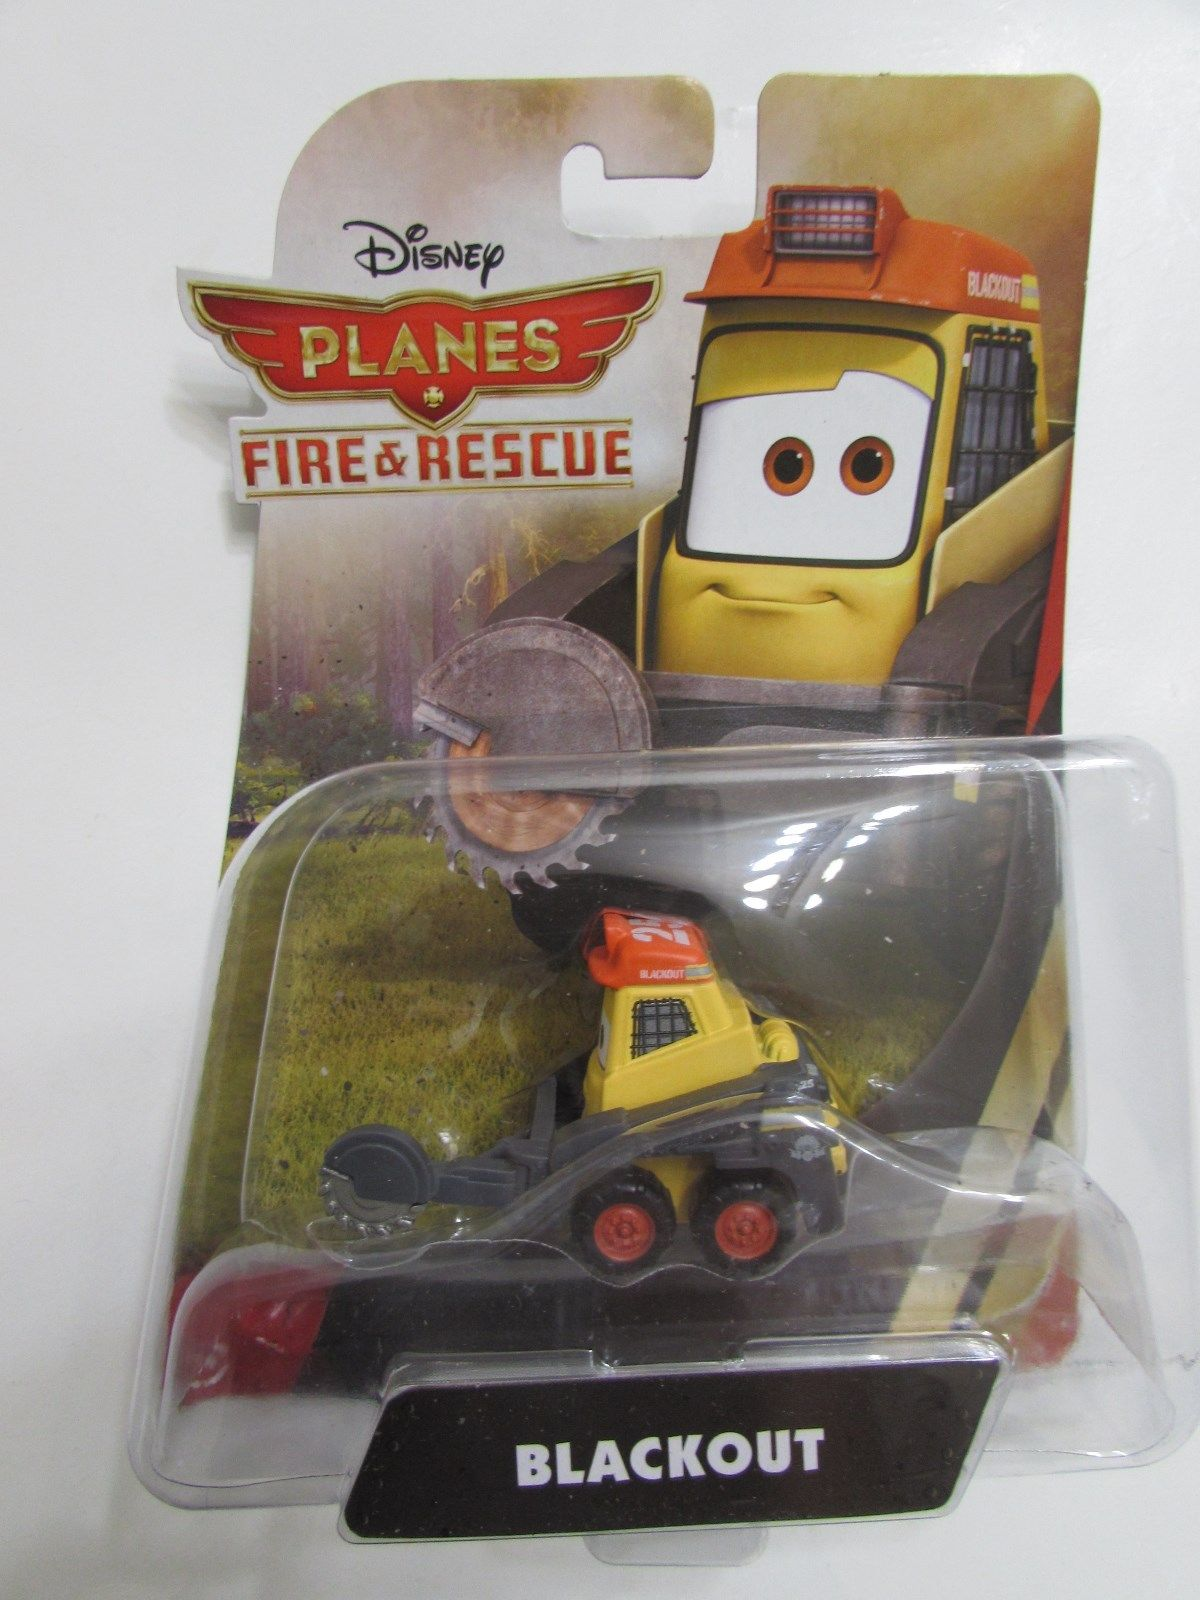 DISNEY PLANES FIRE & RESCUE BLACKOUT